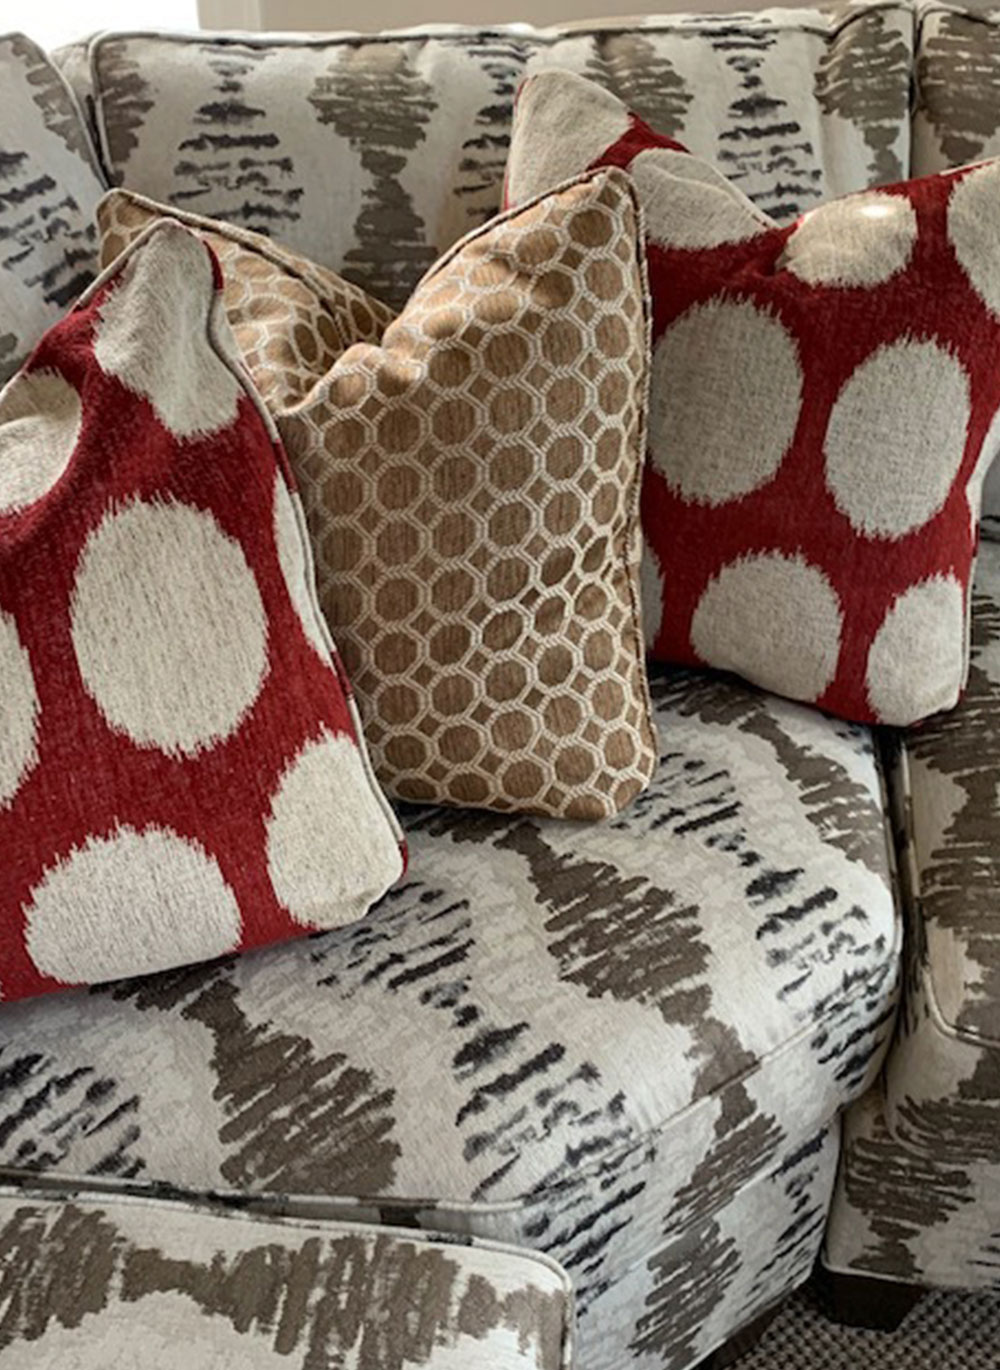 Details of patterned sofa and pillows